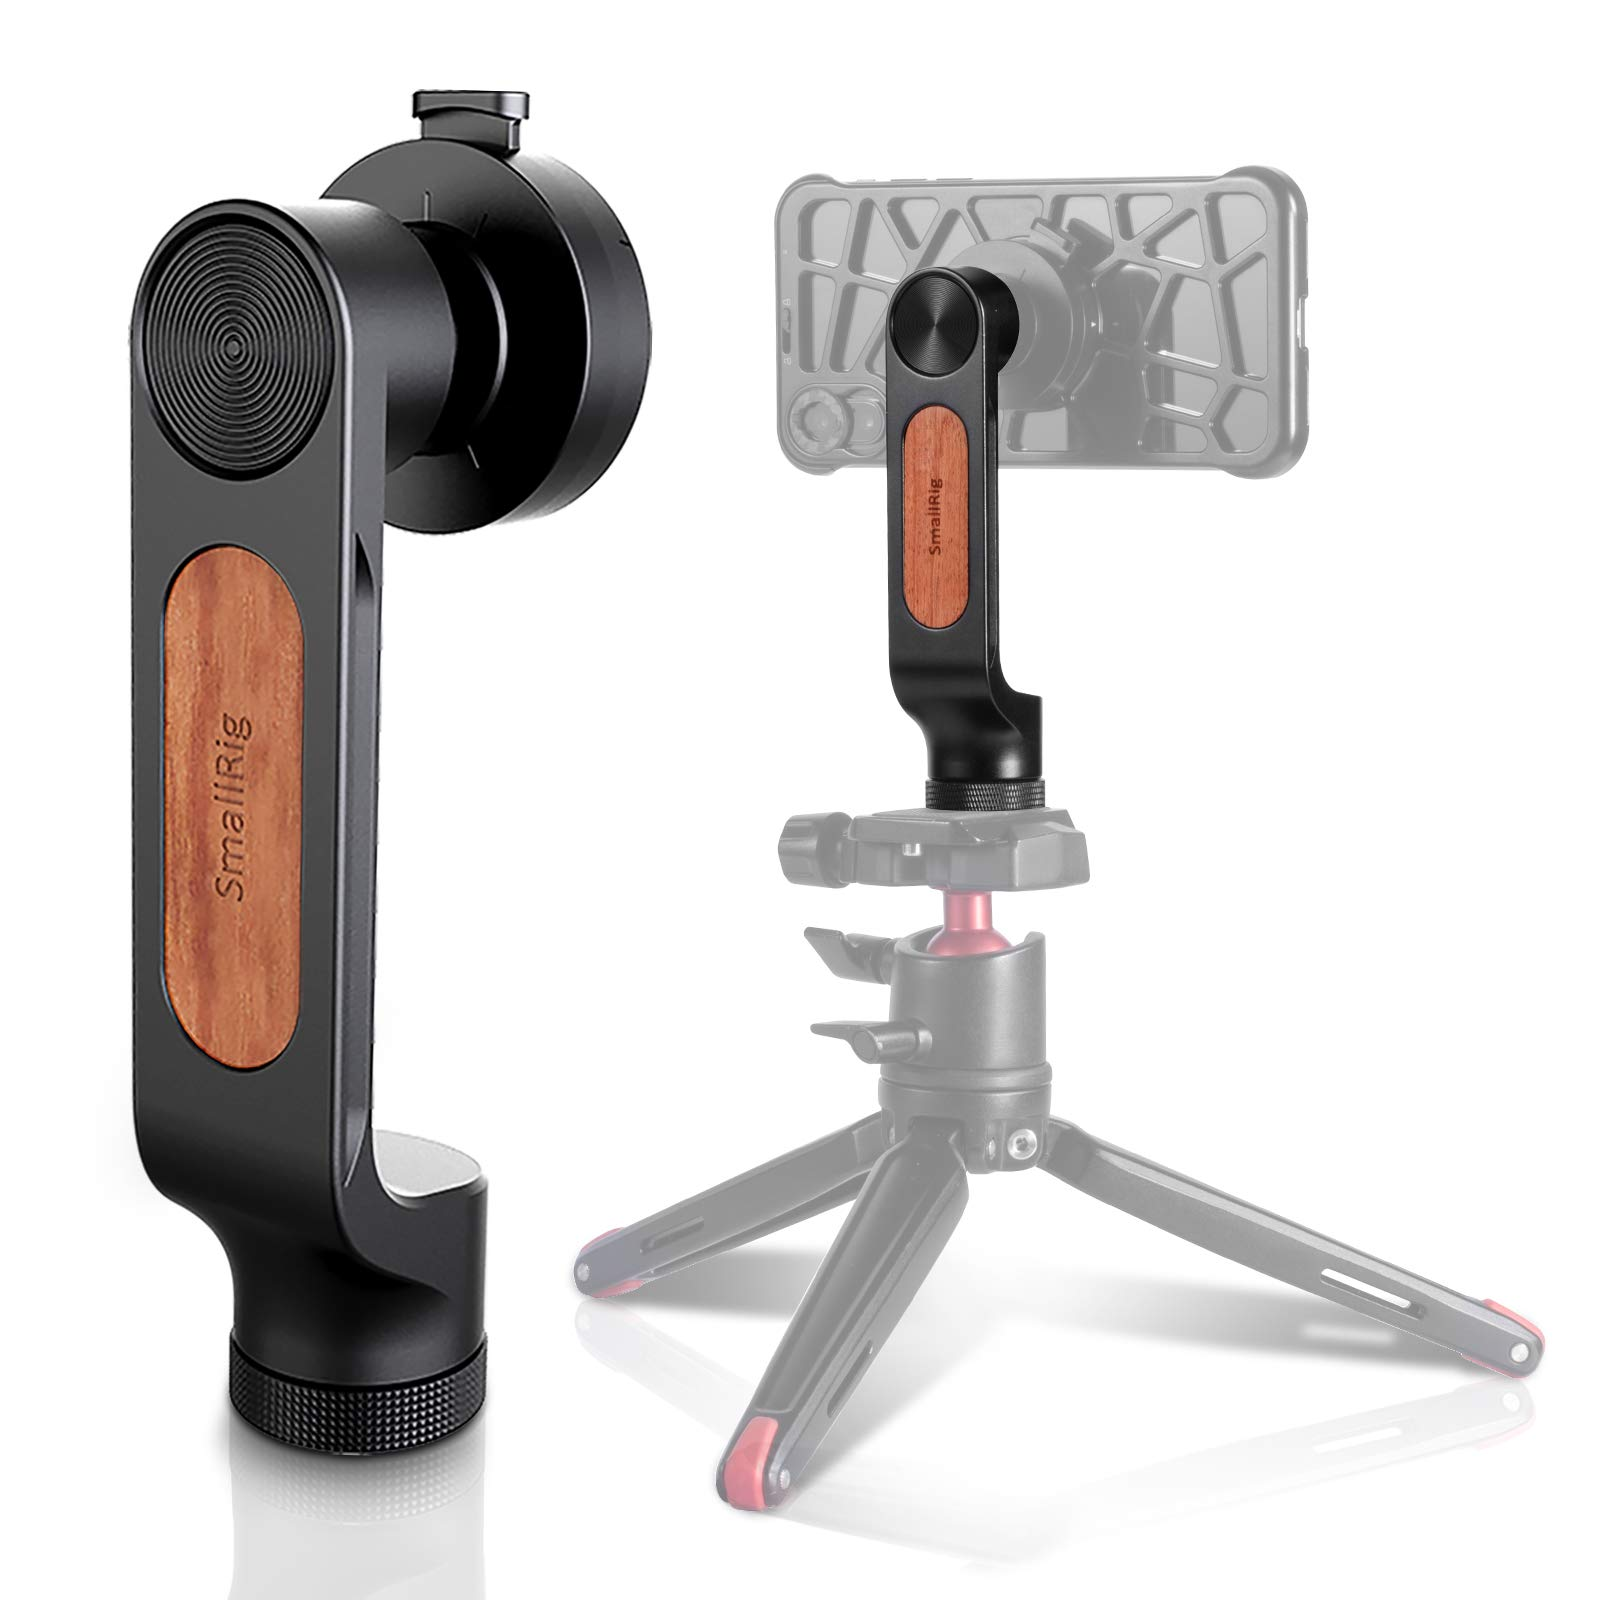 SMALLRIG Tripod Mount Head for SMALLRIG Smartphone Pocket Cage - BSP2380 by SMALLRIG